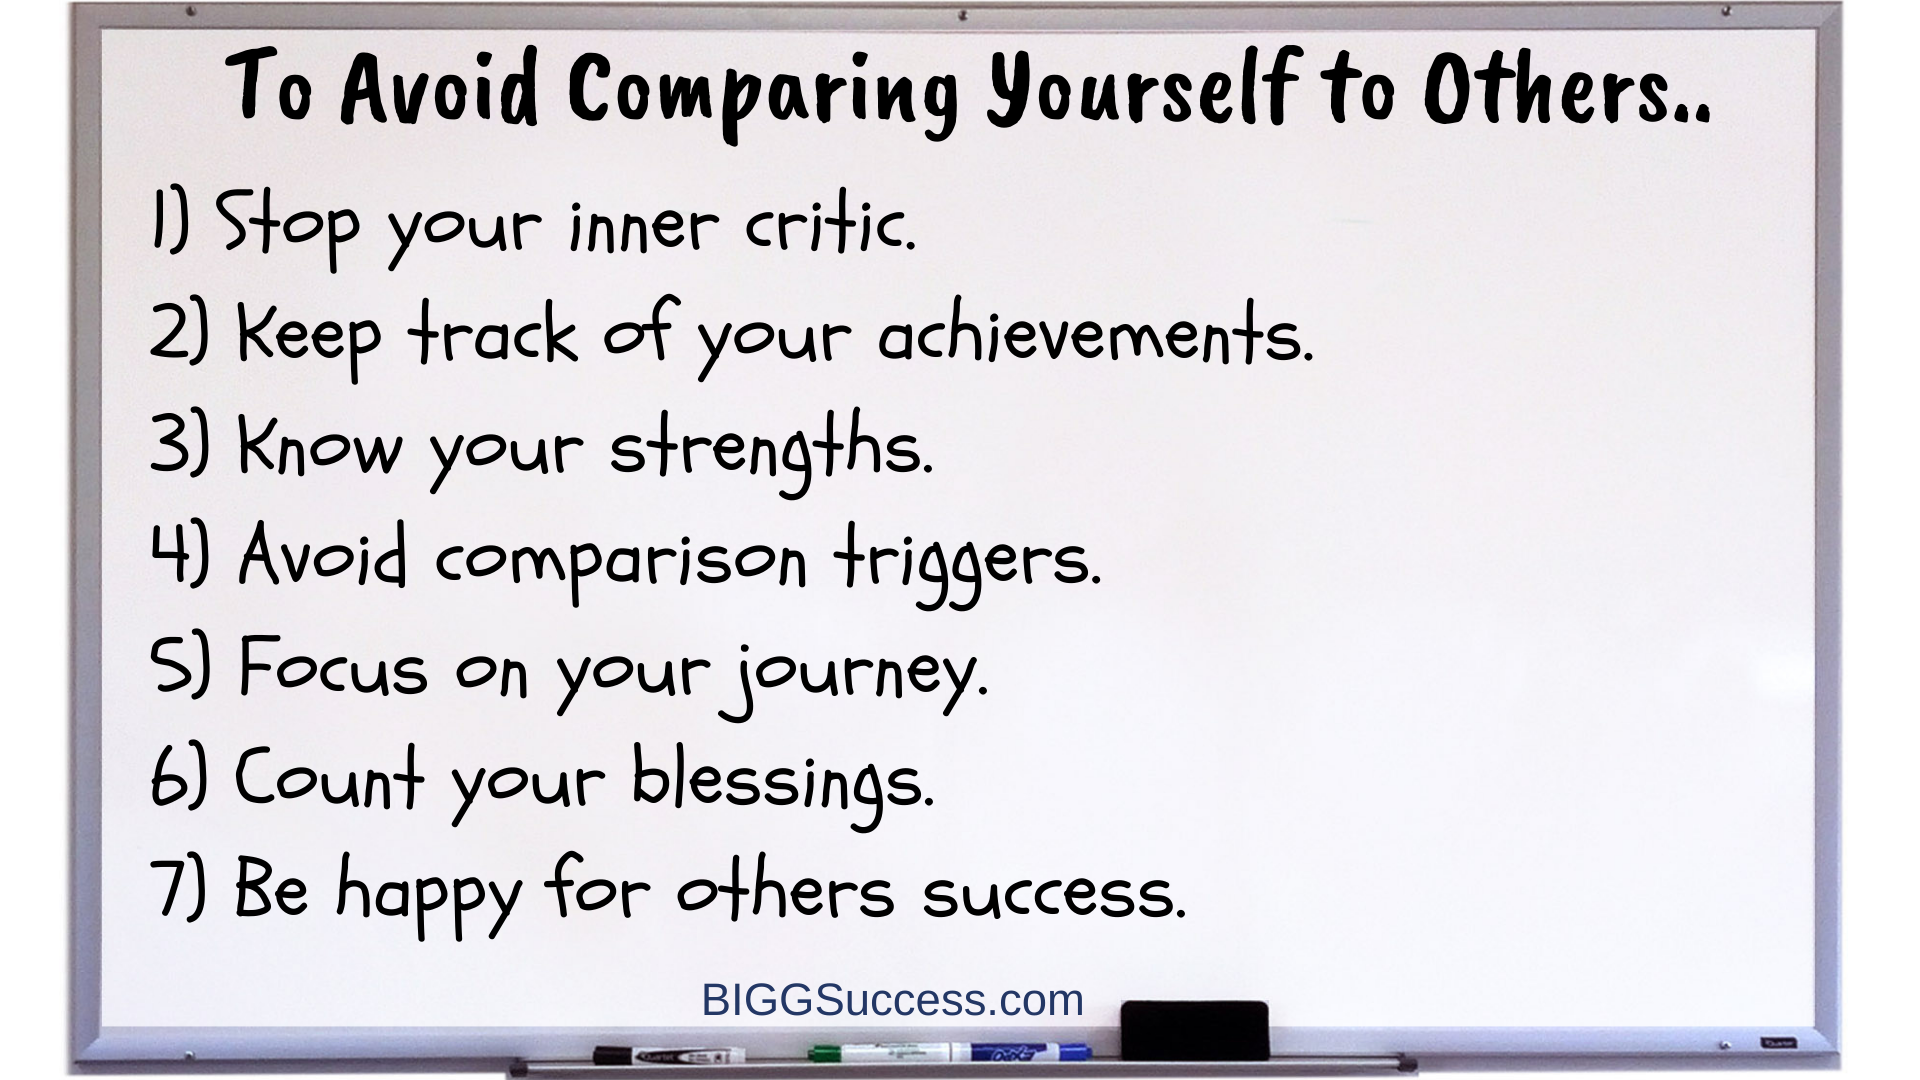 Avoid comparing yourself to others whiteboard